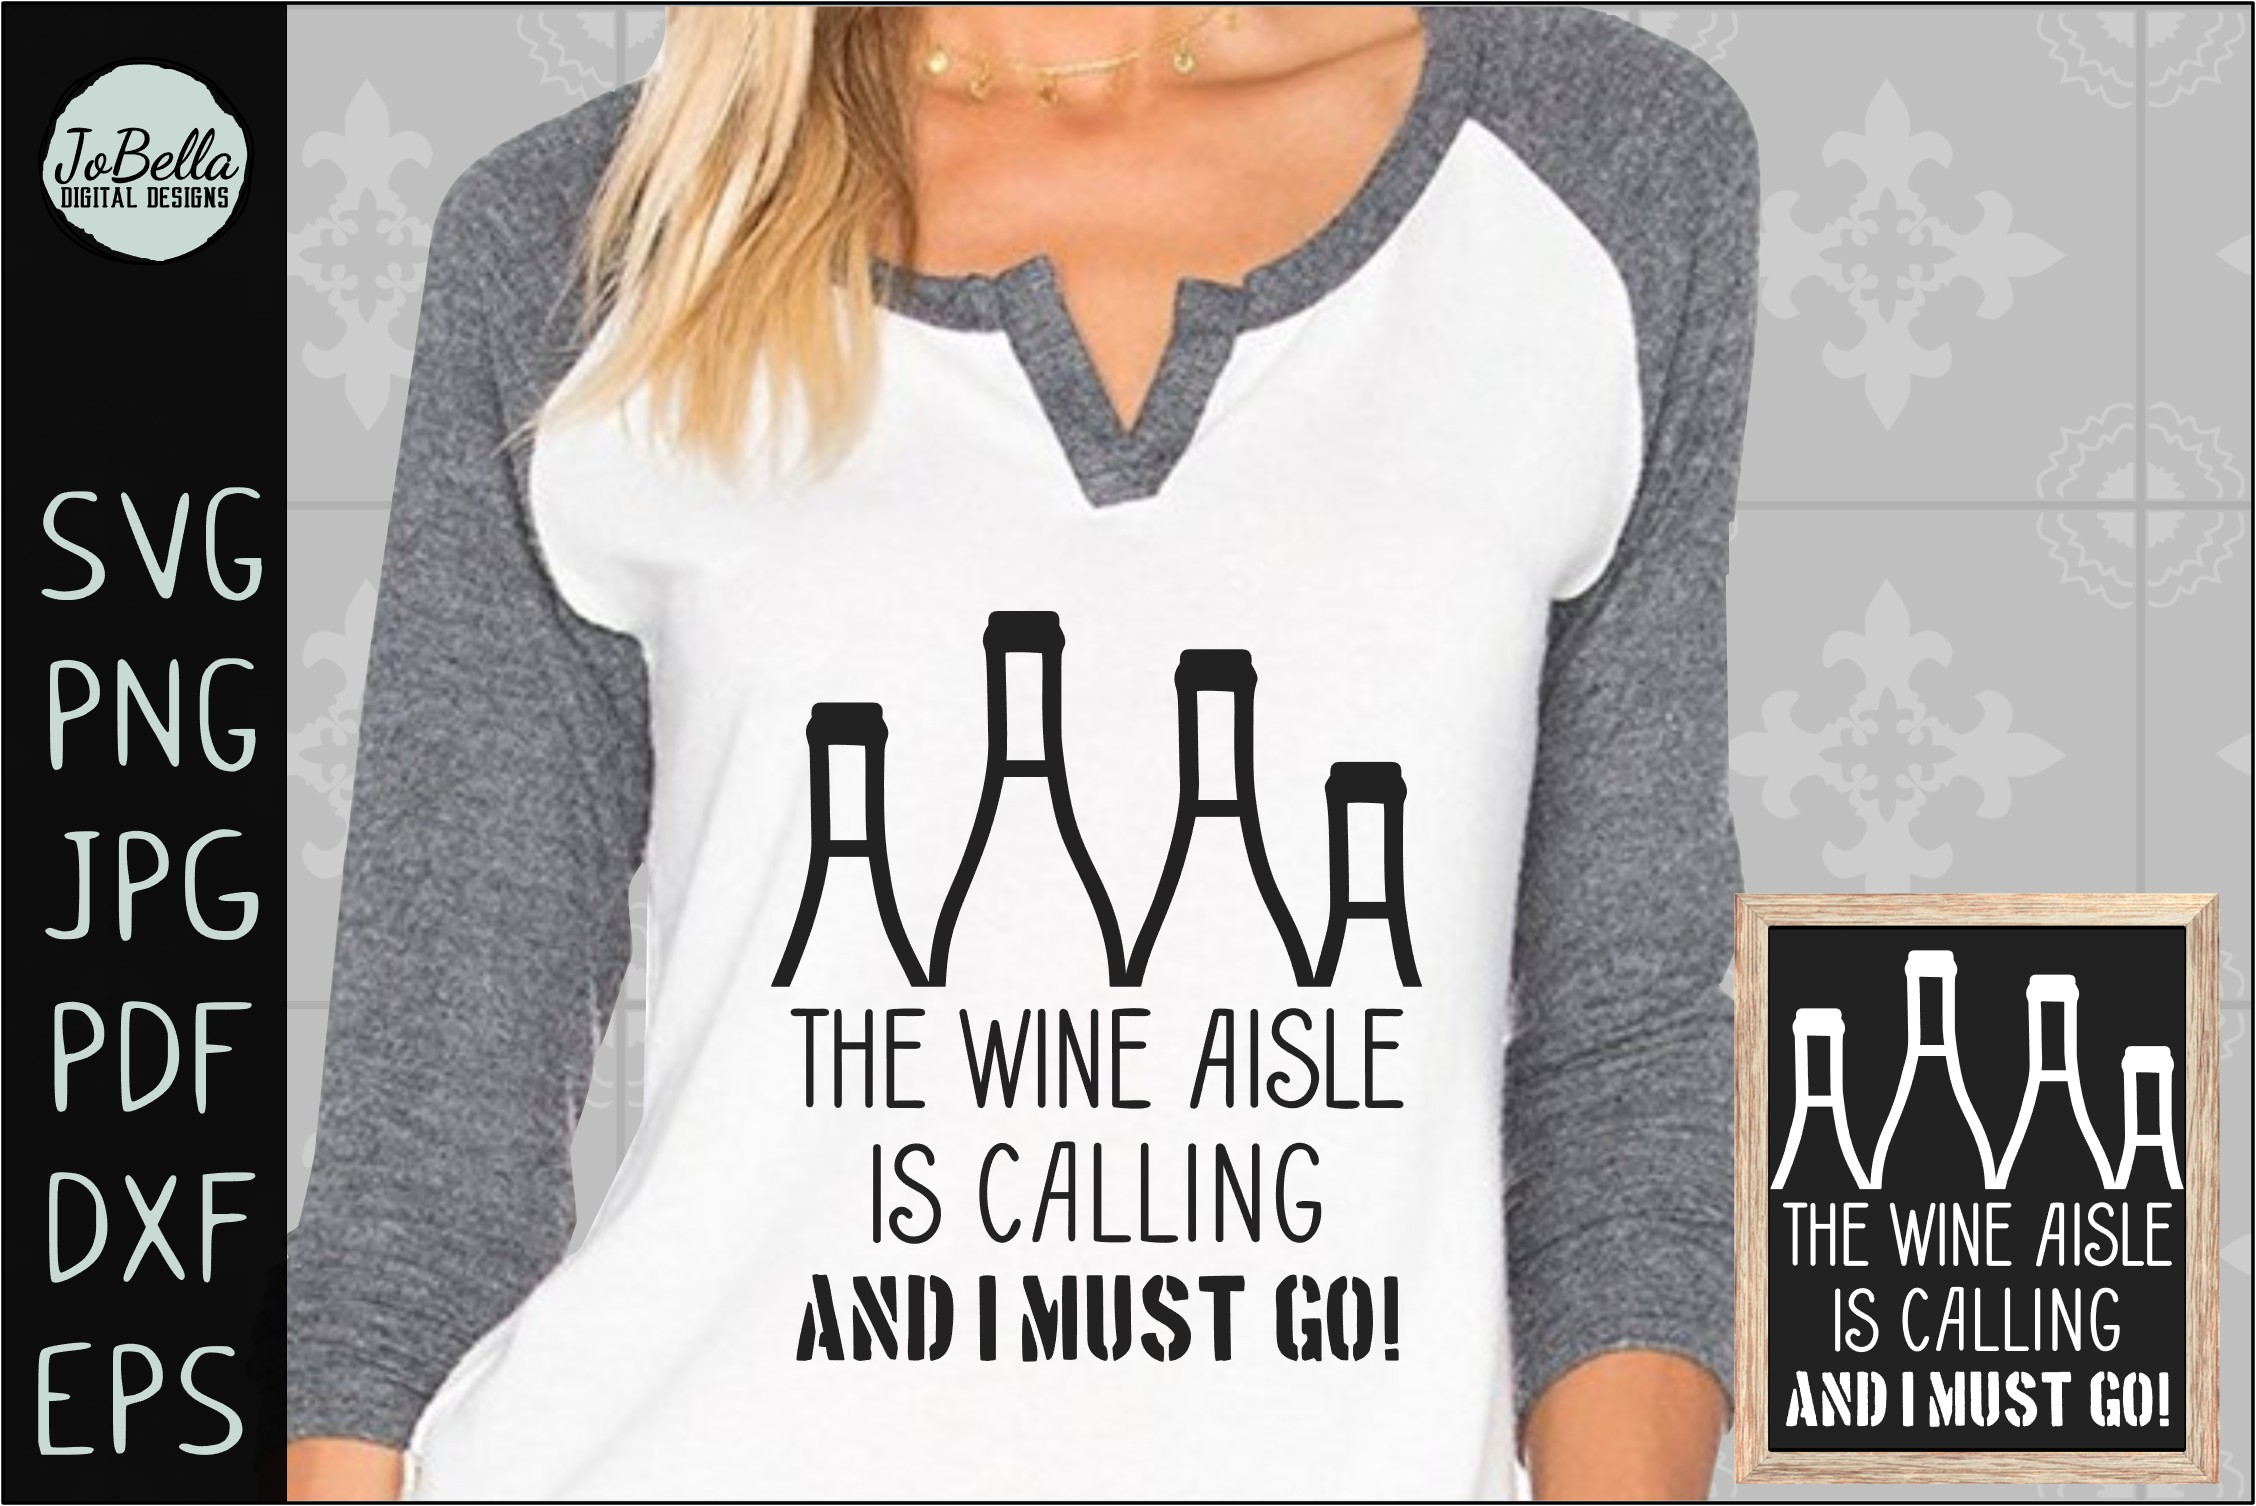 Download Free Funny Wine Graphic By Jobella Digital Designs Creative Fabrica for Cricut Explore, Silhouette and other cutting machines.